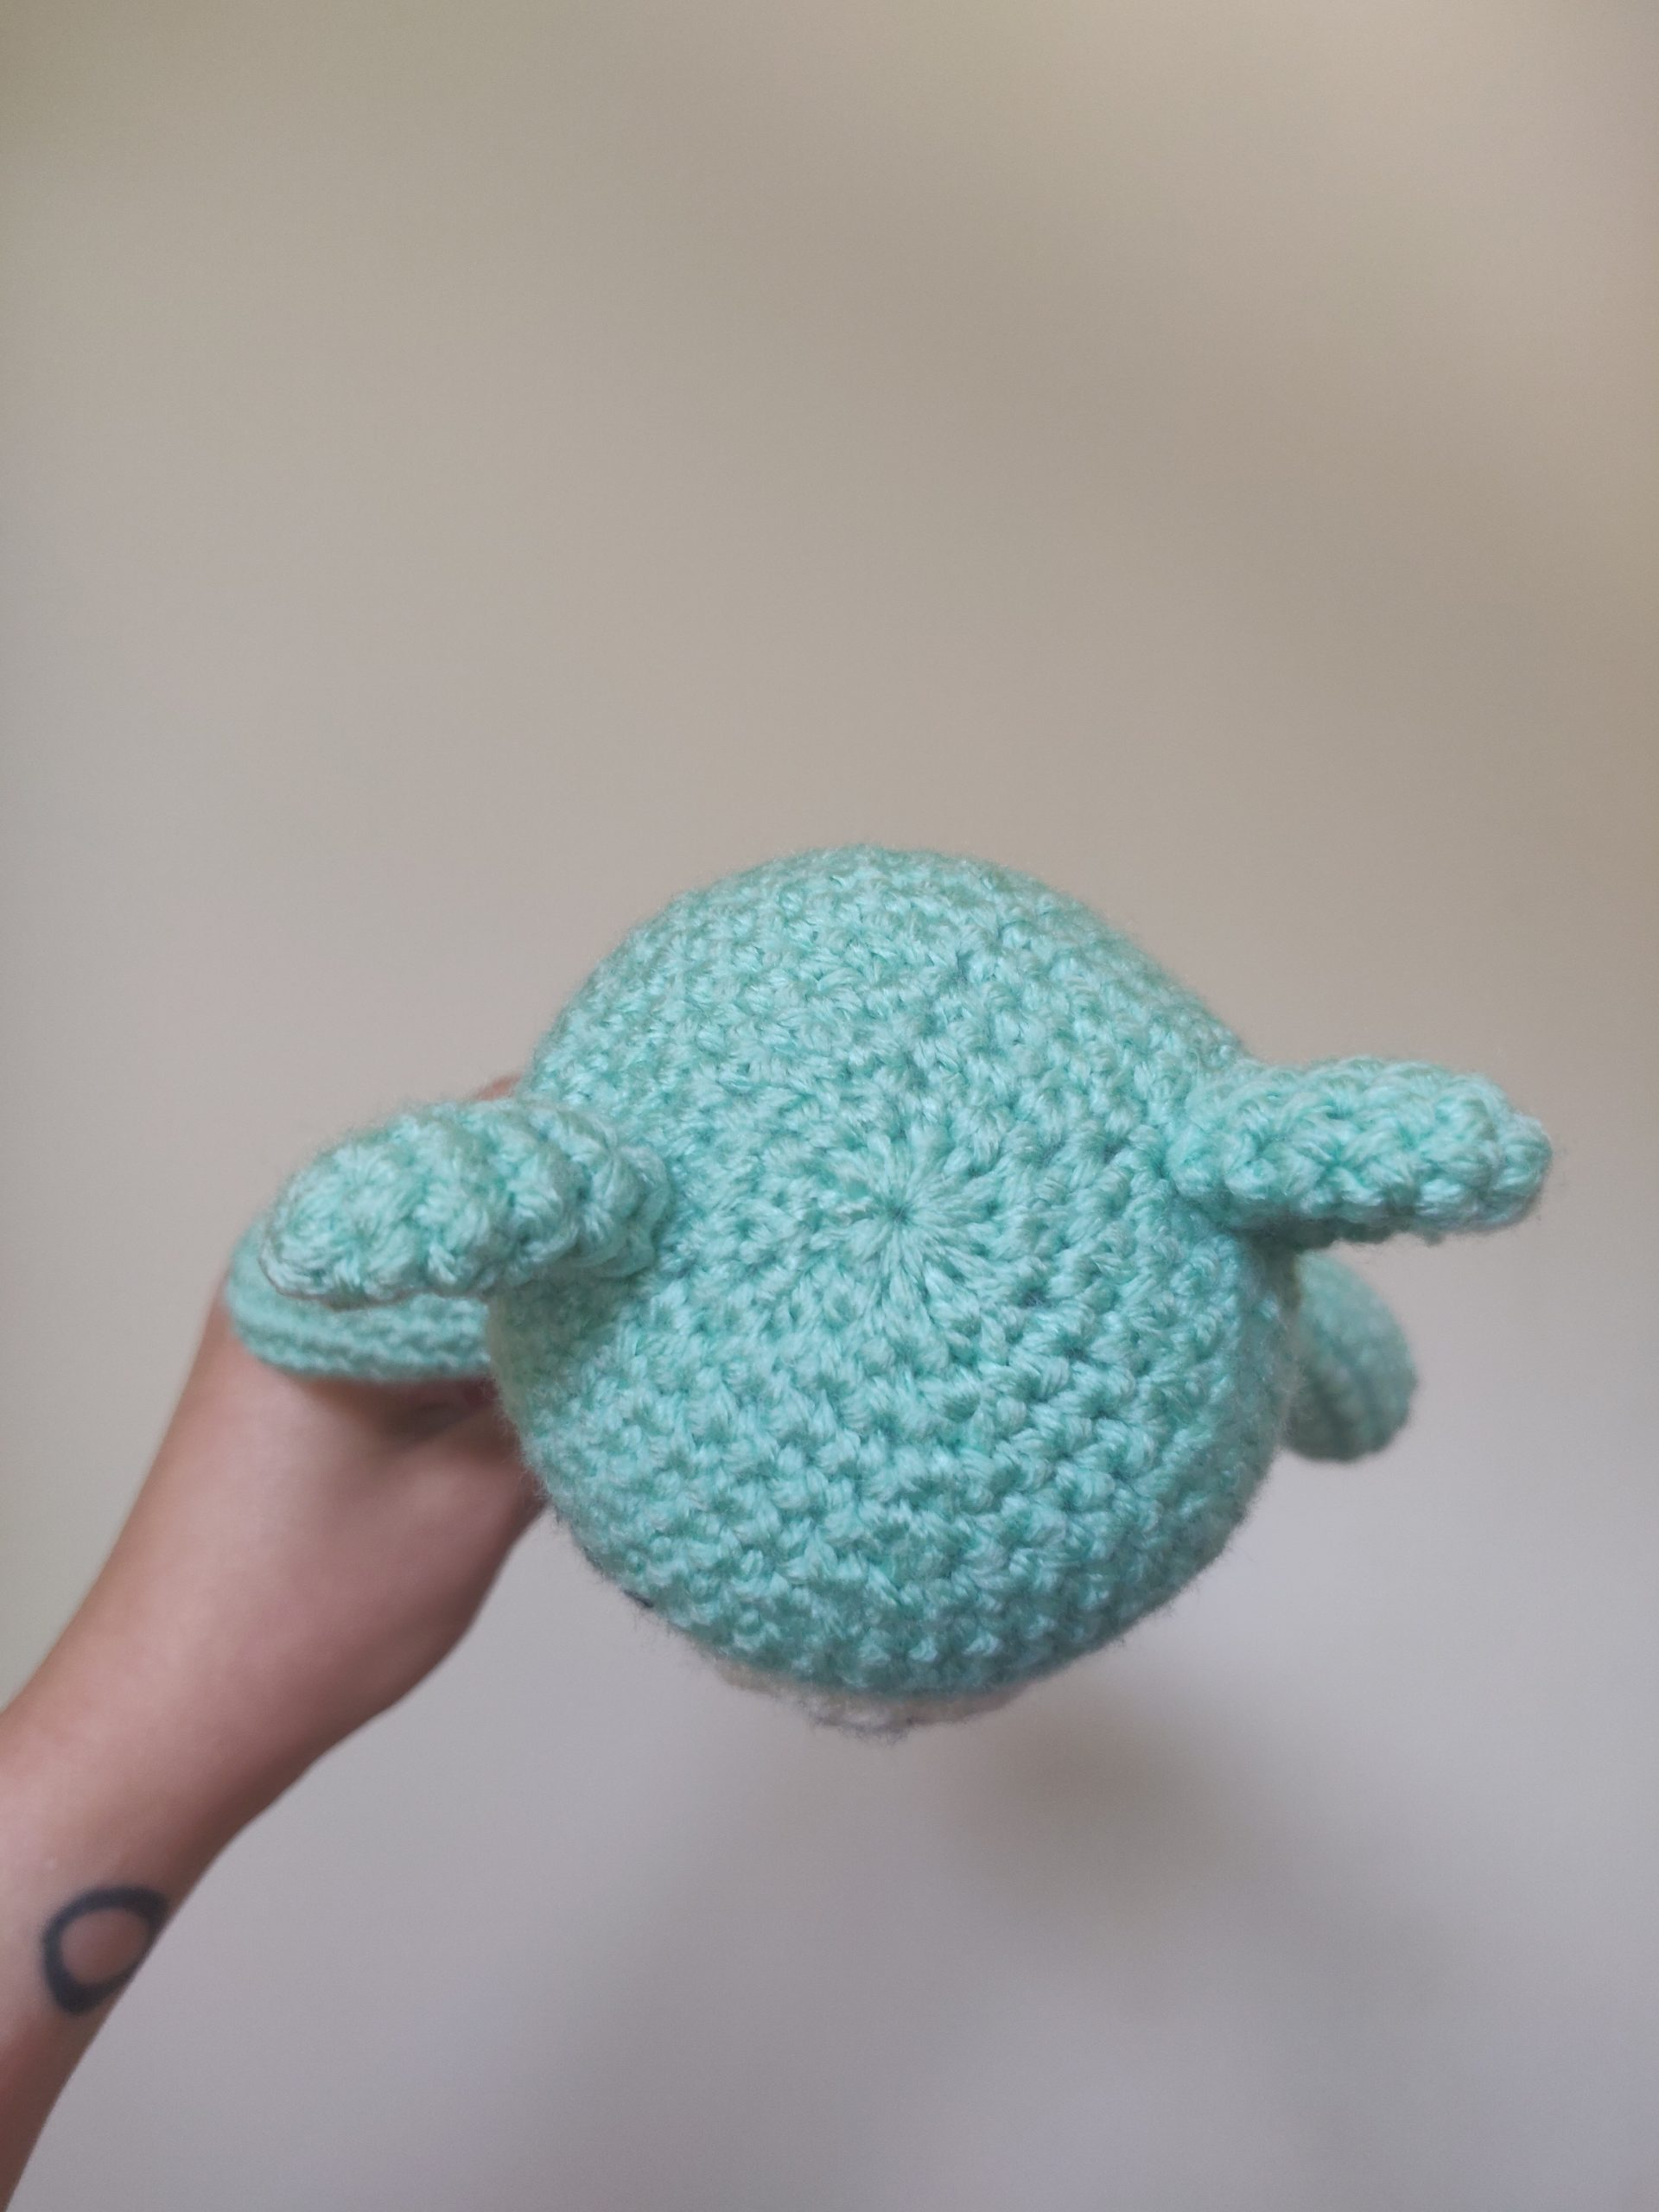 blue crochet bear with two ears sewn on.